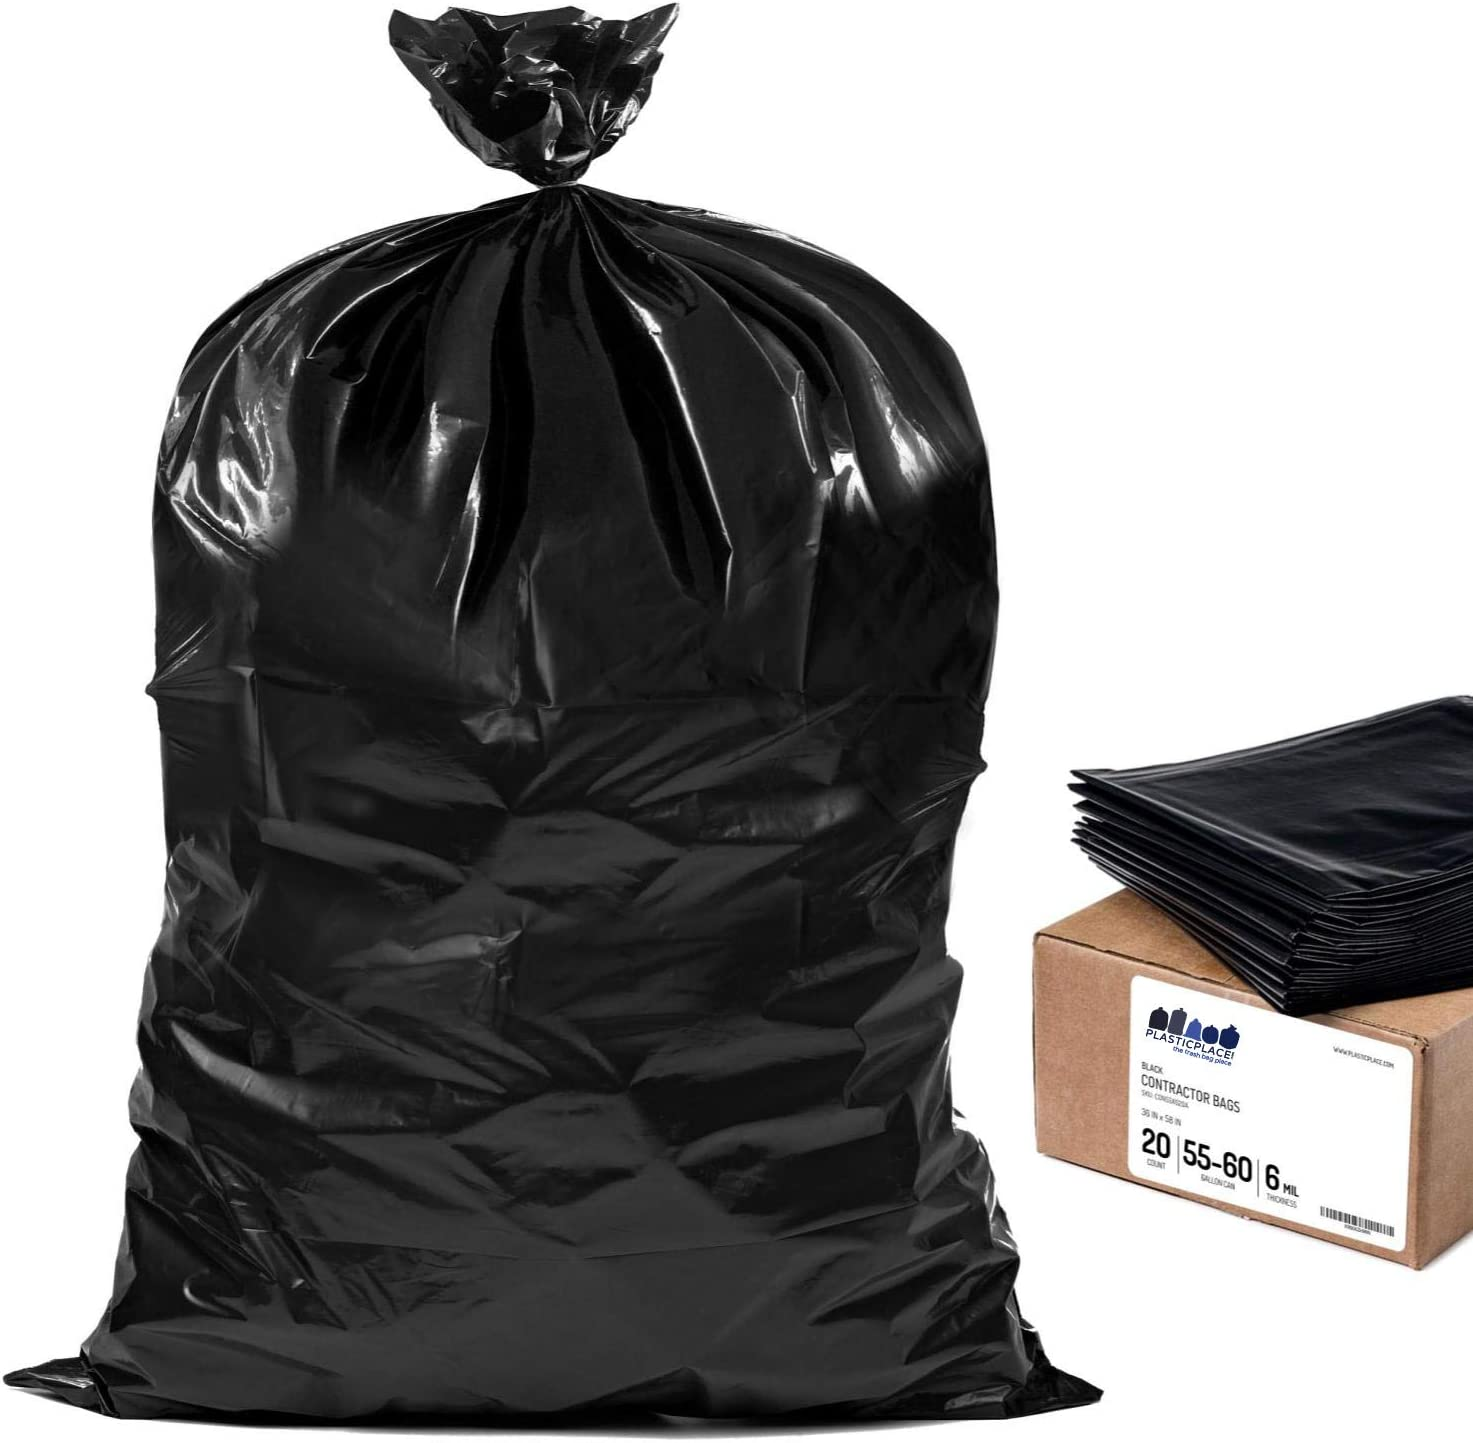 "Plasticplace Contractor Trash Bags 55-60 Gallon │ 6.0 Mil │ Black Heavy Duty Garbage Bag │ 36"" x 58"" (20 Count) (CON55X620A)"